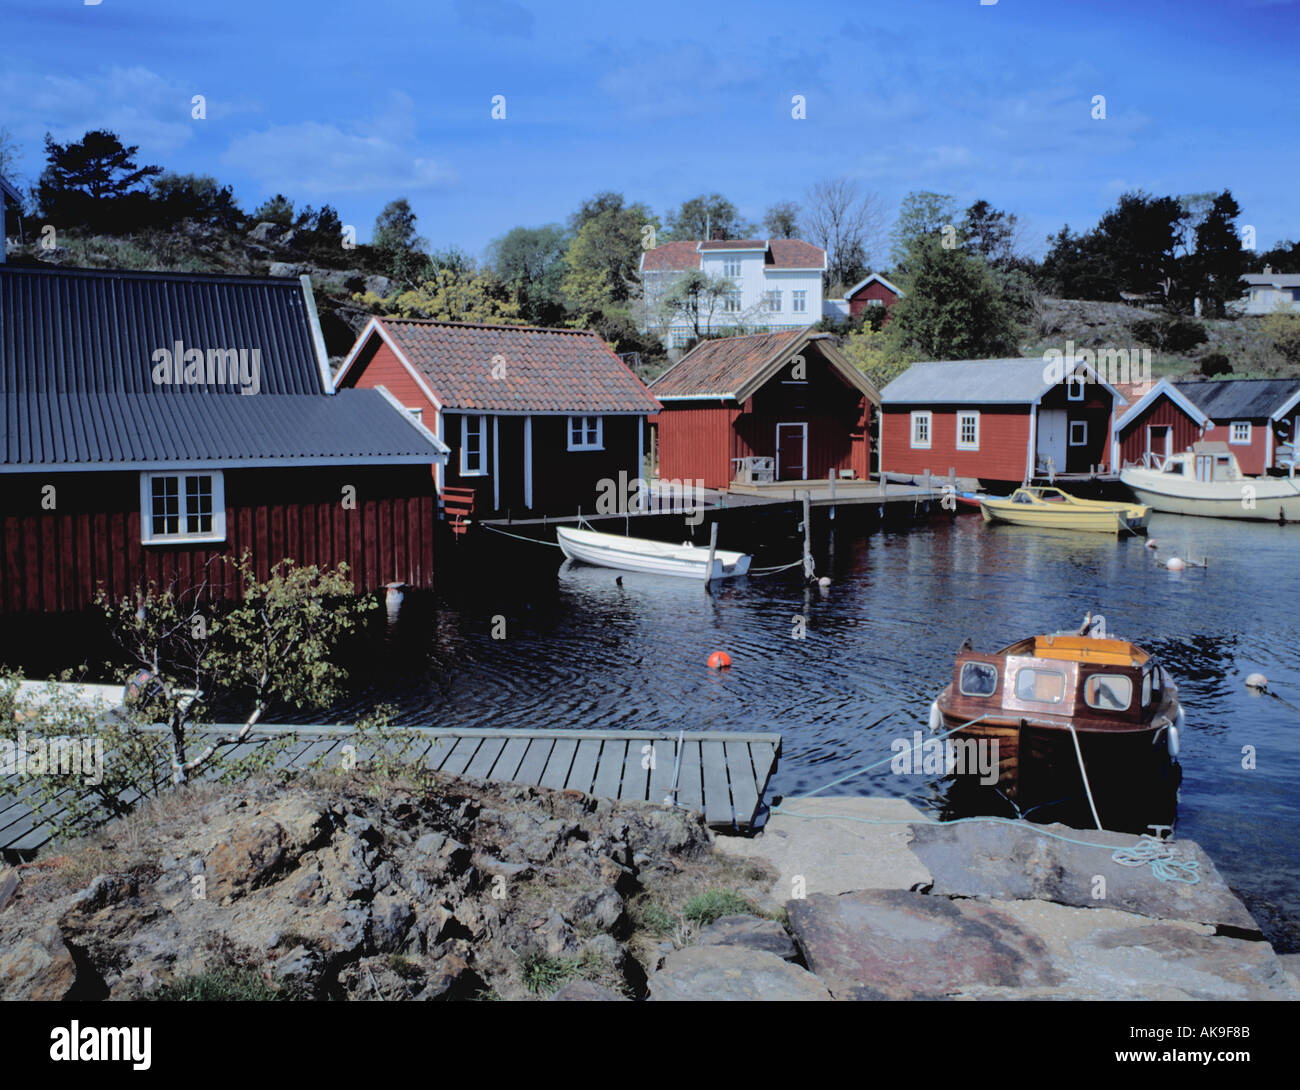 Picturesque view over harbour to waterside wooden huts, Homborsund, Aust-Agder, Norway. - Stock Image